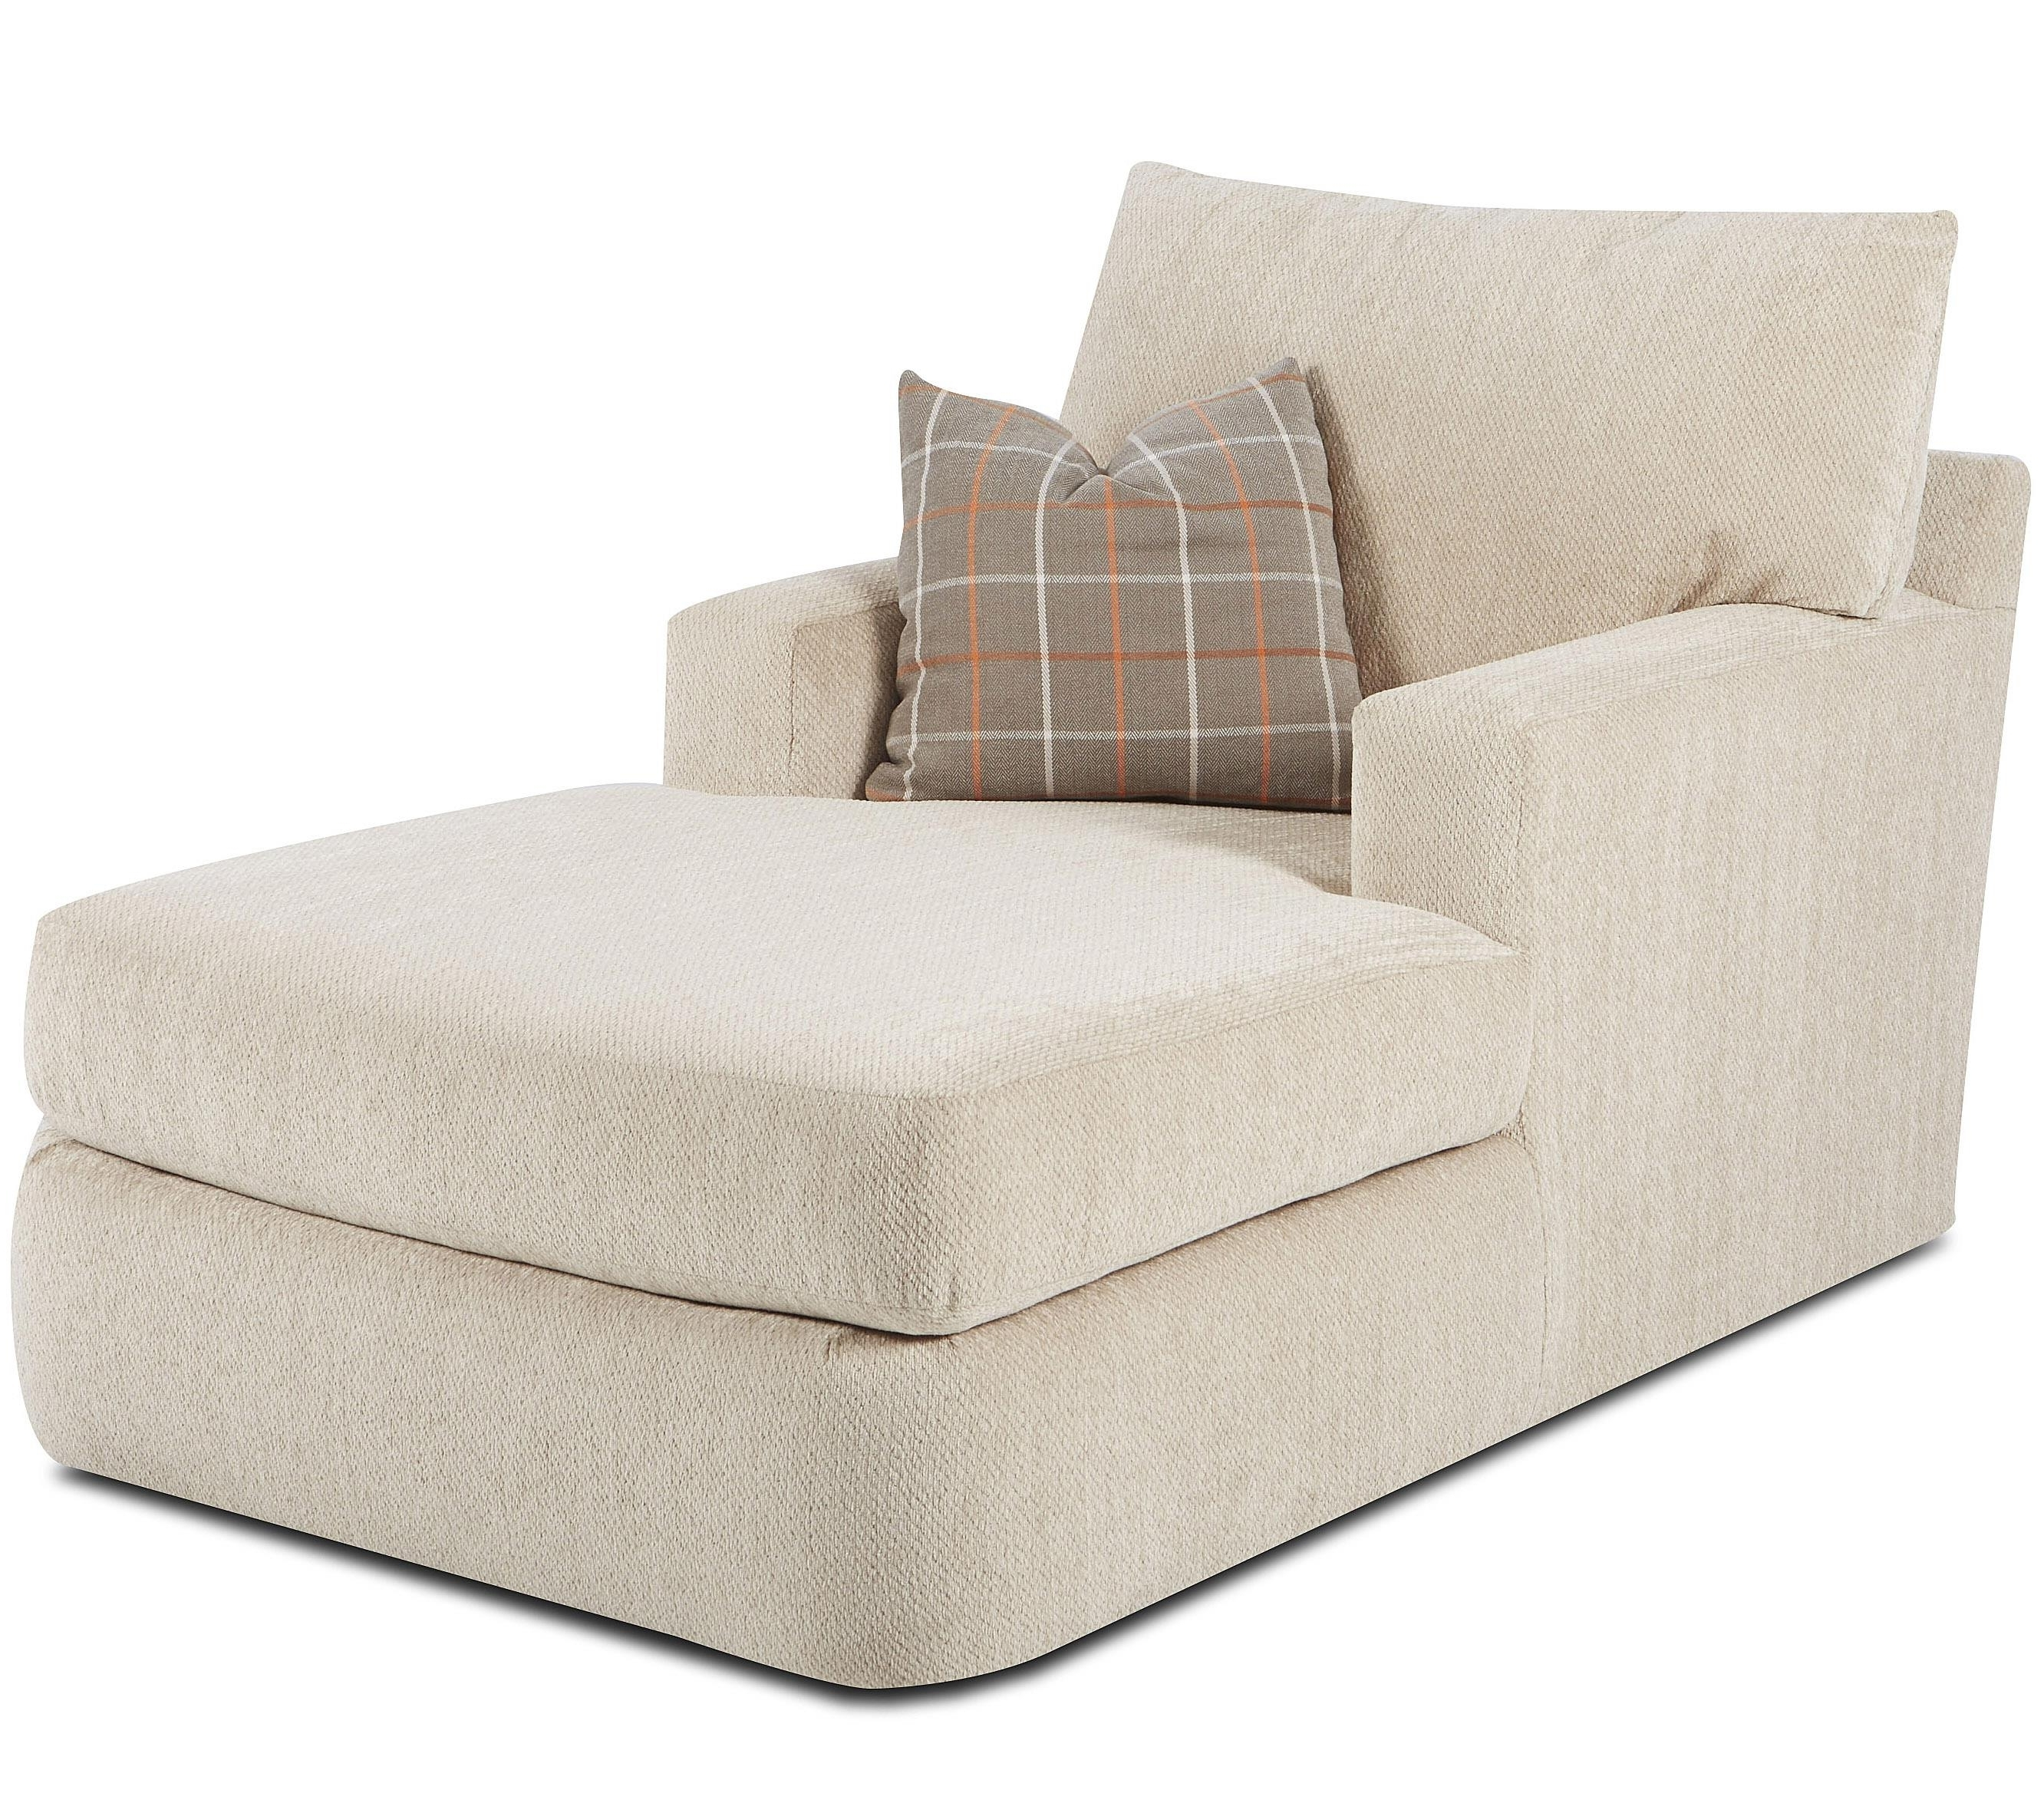 Chaise Lounges With Arms Throughout Current Klaussner Oliver Contemporary Track Arm Chaise (View 6 of 15)